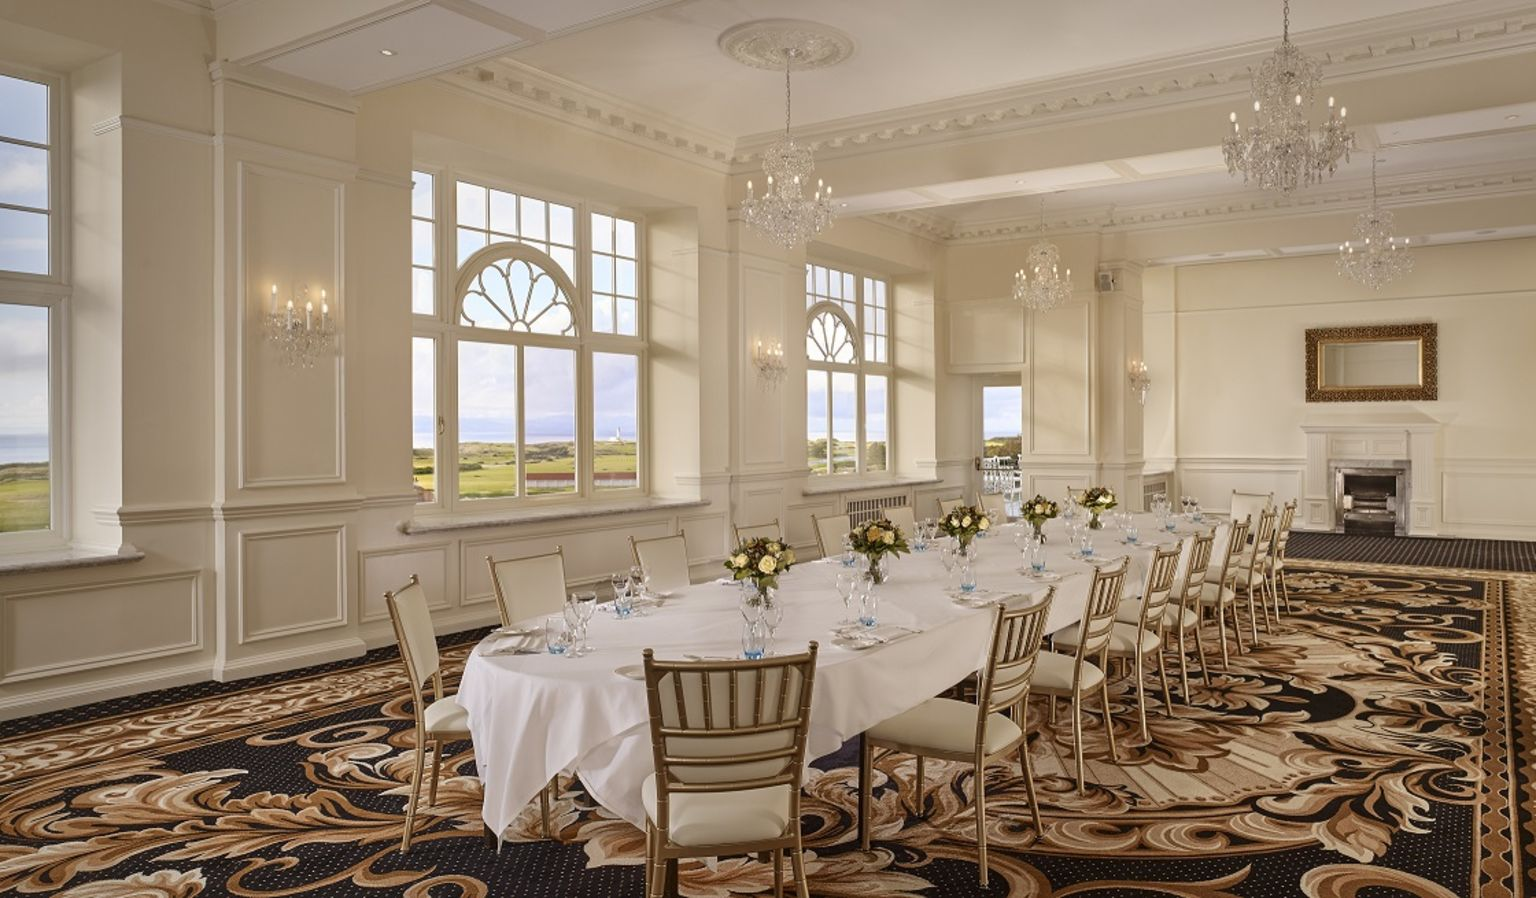 Ailsa Craig Meeting Room with Long Table and Chairs